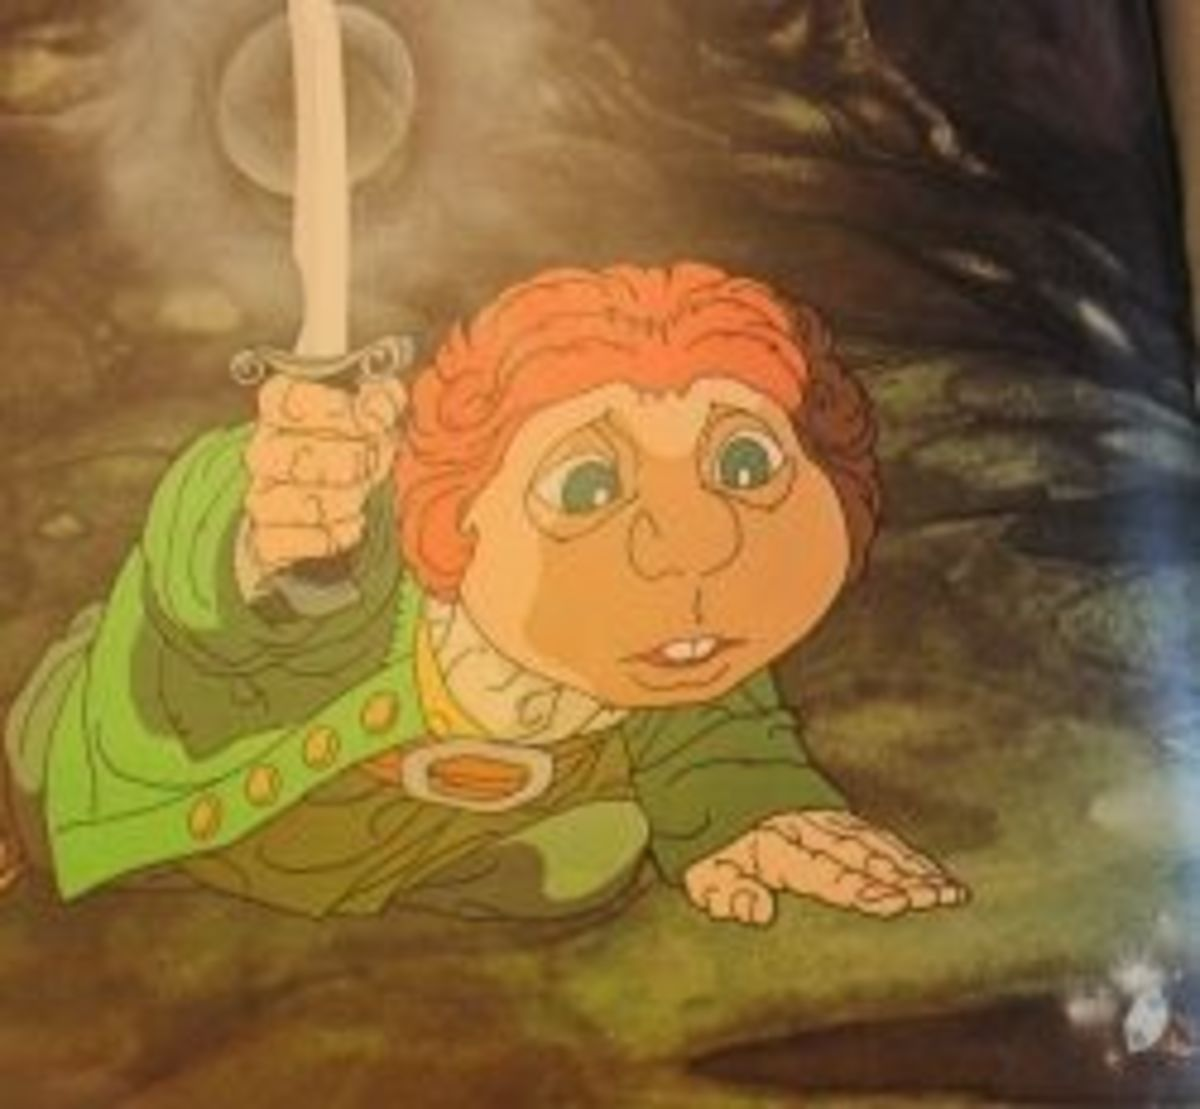 """The Hobbit"" Book and Animated Movie for Children"